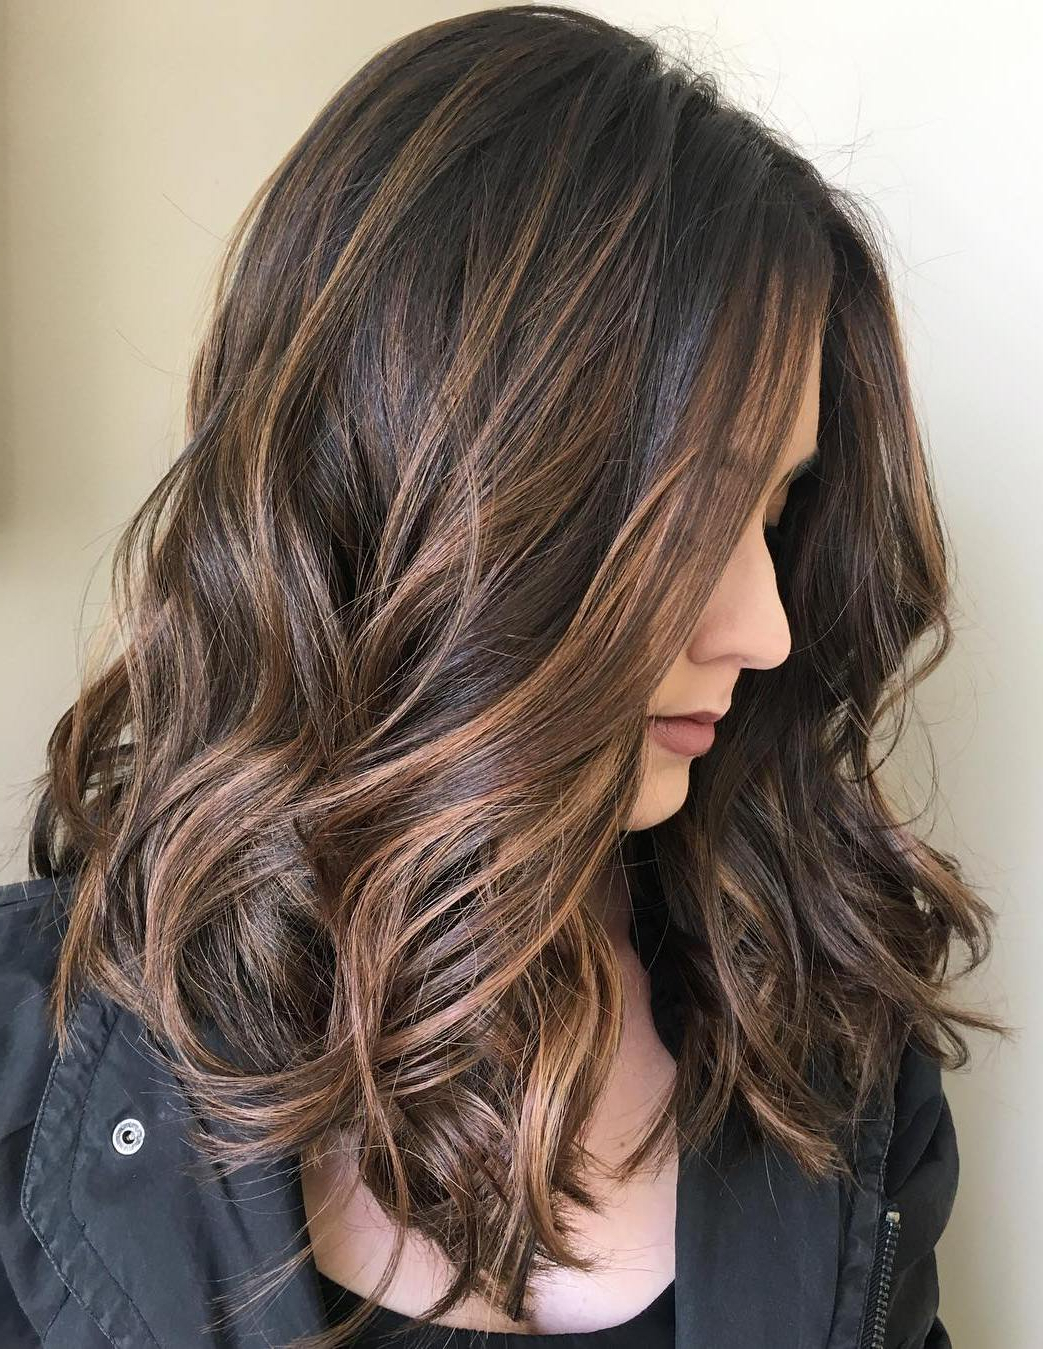 70 Balayage Hair Color Ideas With Blonde, Brown And Caramel Highlights Inside 2018 Long Dark Hairstyles With Blonde Contour Balayage (View 3 of 20)